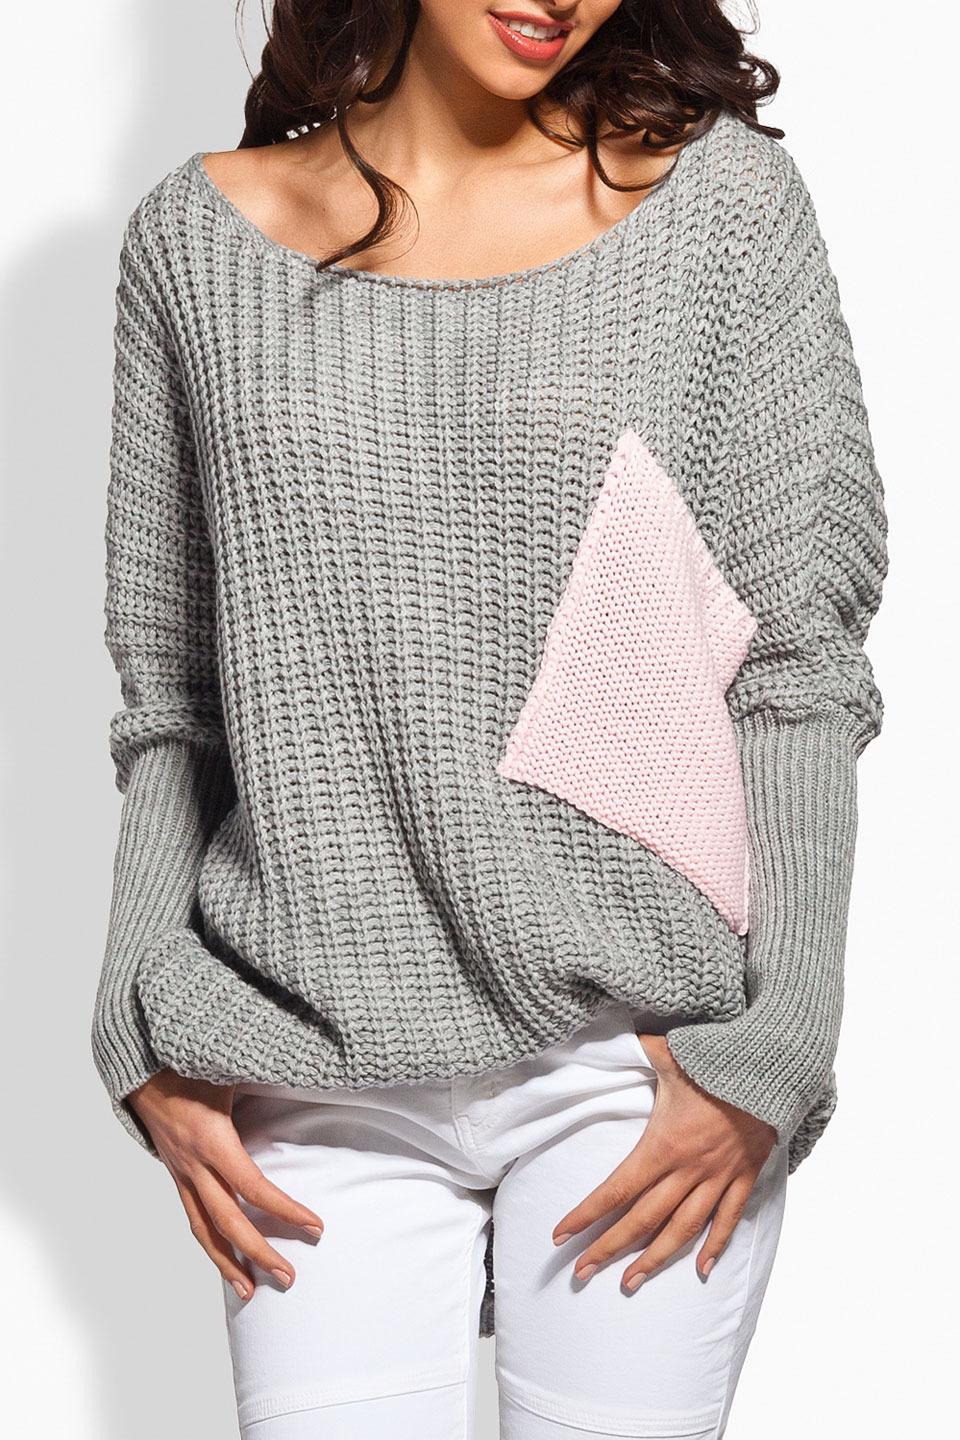 Jenny Sweater in Light Gray and Powder Pink